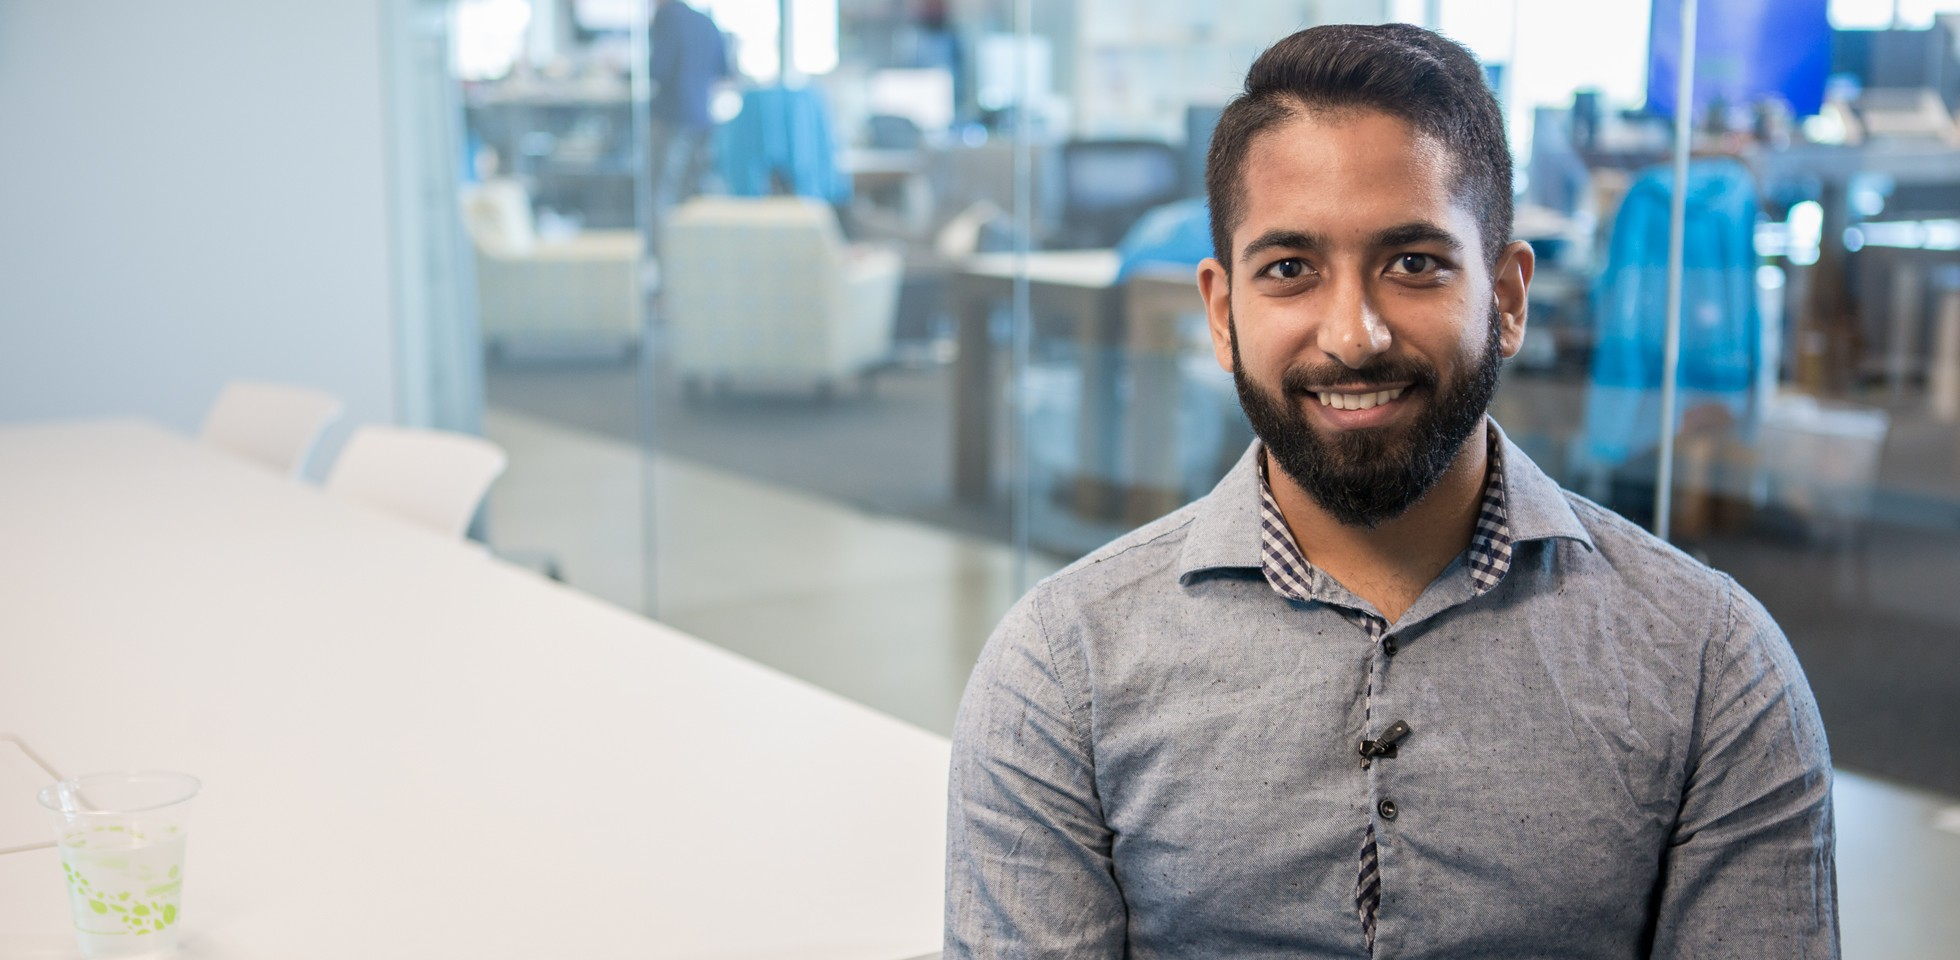 Ravi Punj, Engineering Lead - Shopkick Careers